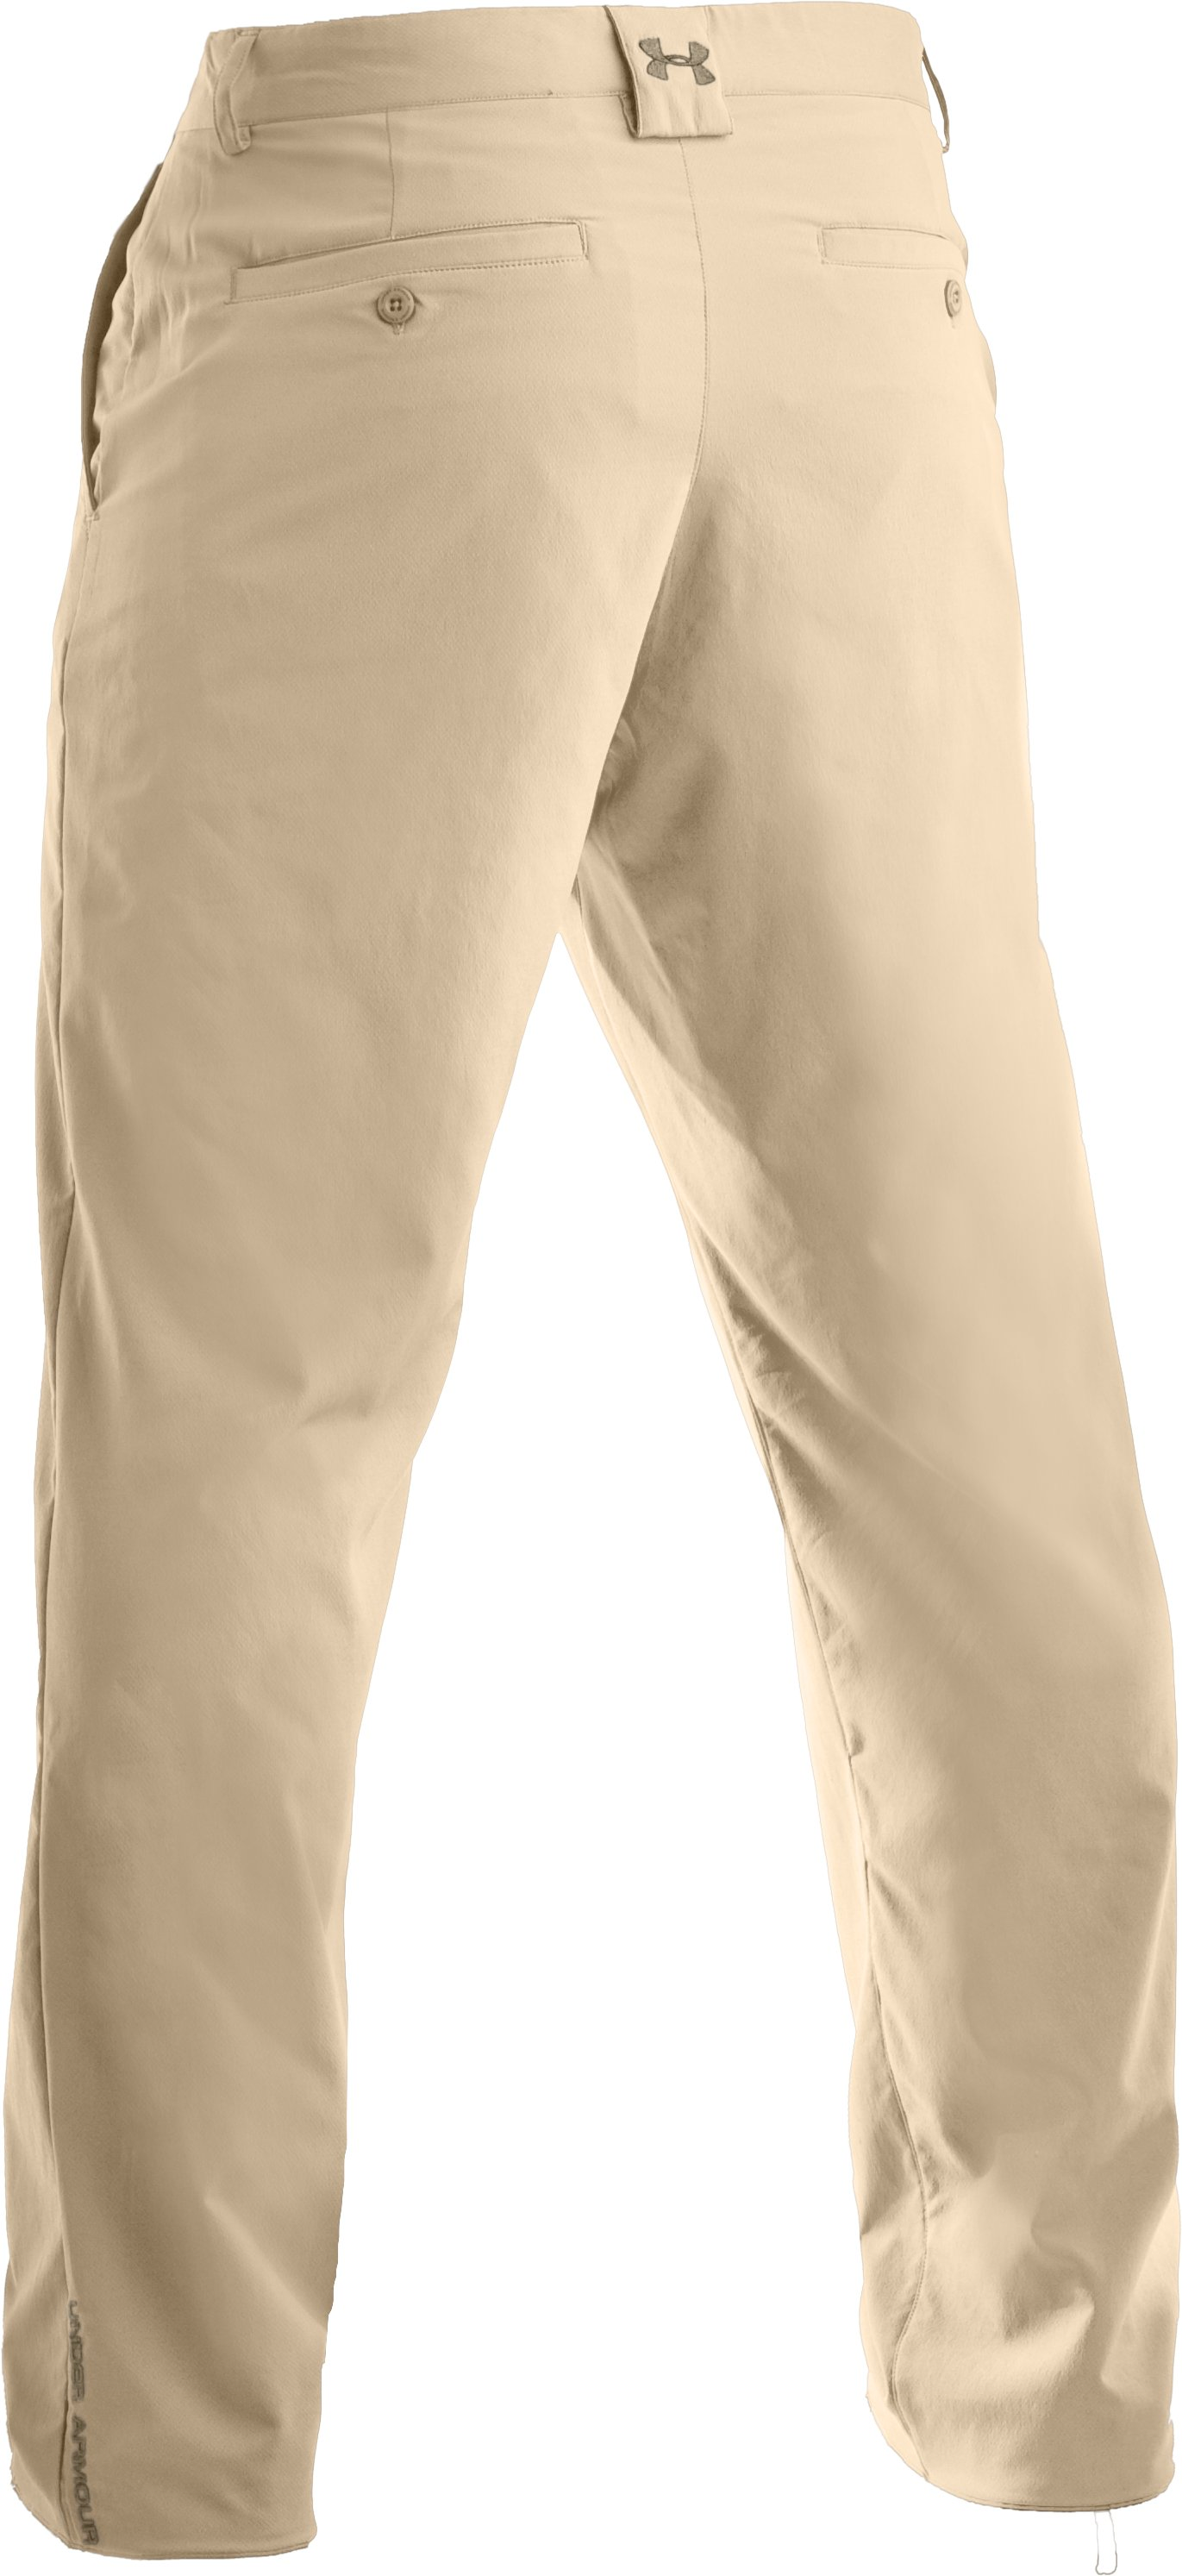 Men's Performance Flat Front Pants, Light Khaki